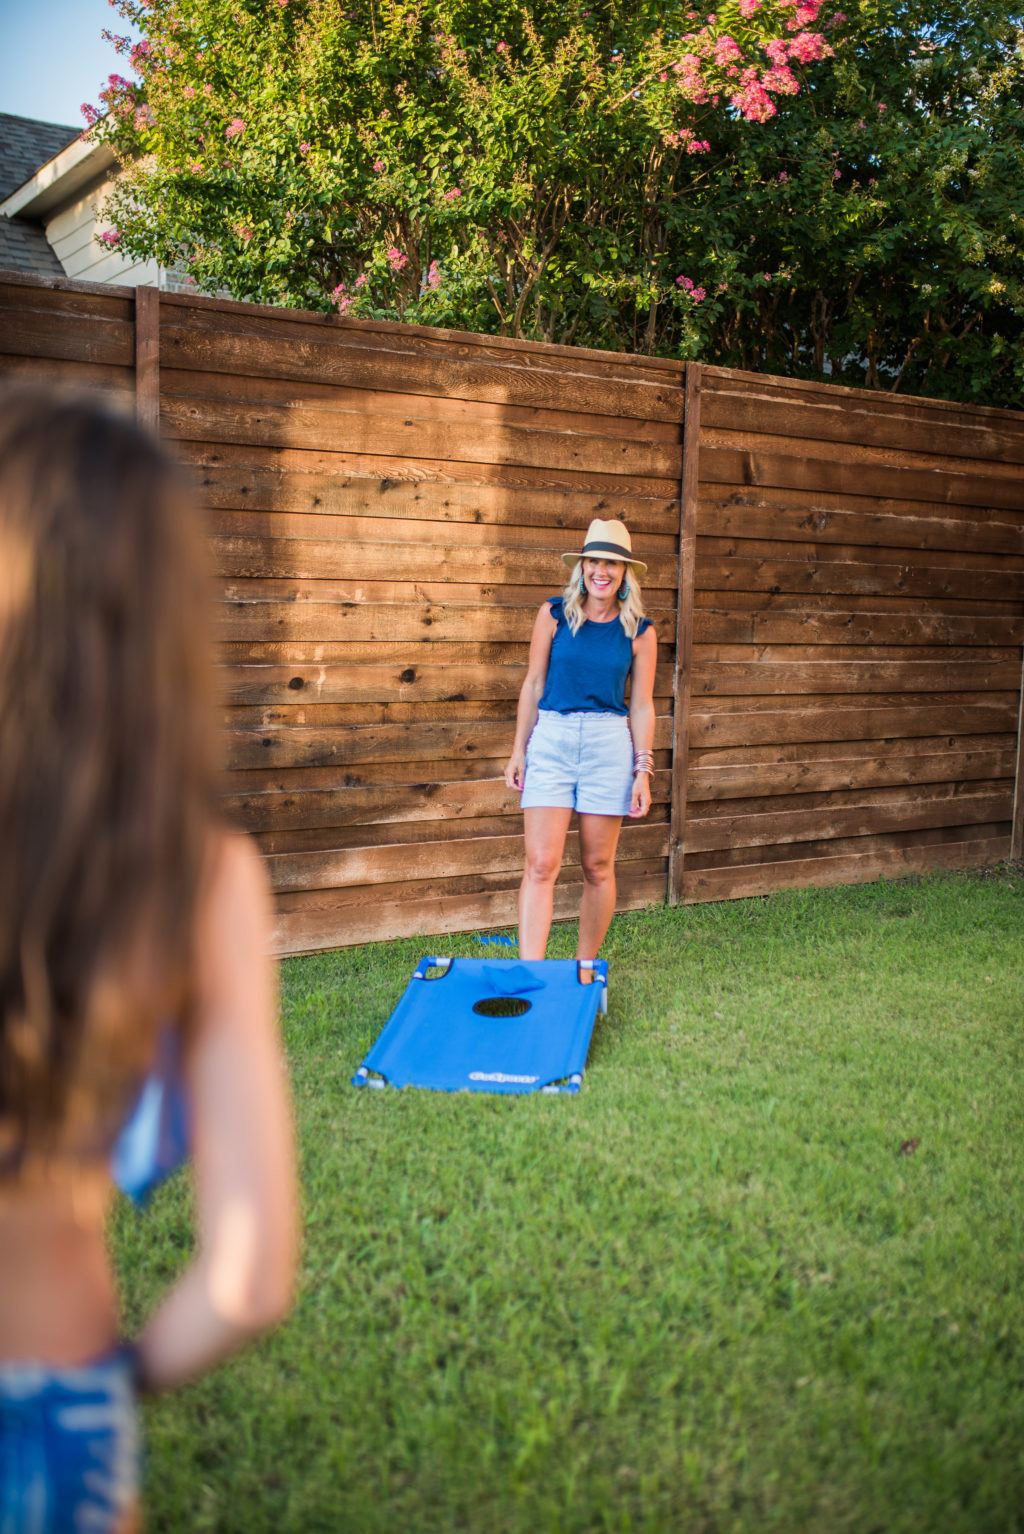 family playing cornhole in backyard behind horizontal privacy fence during summer